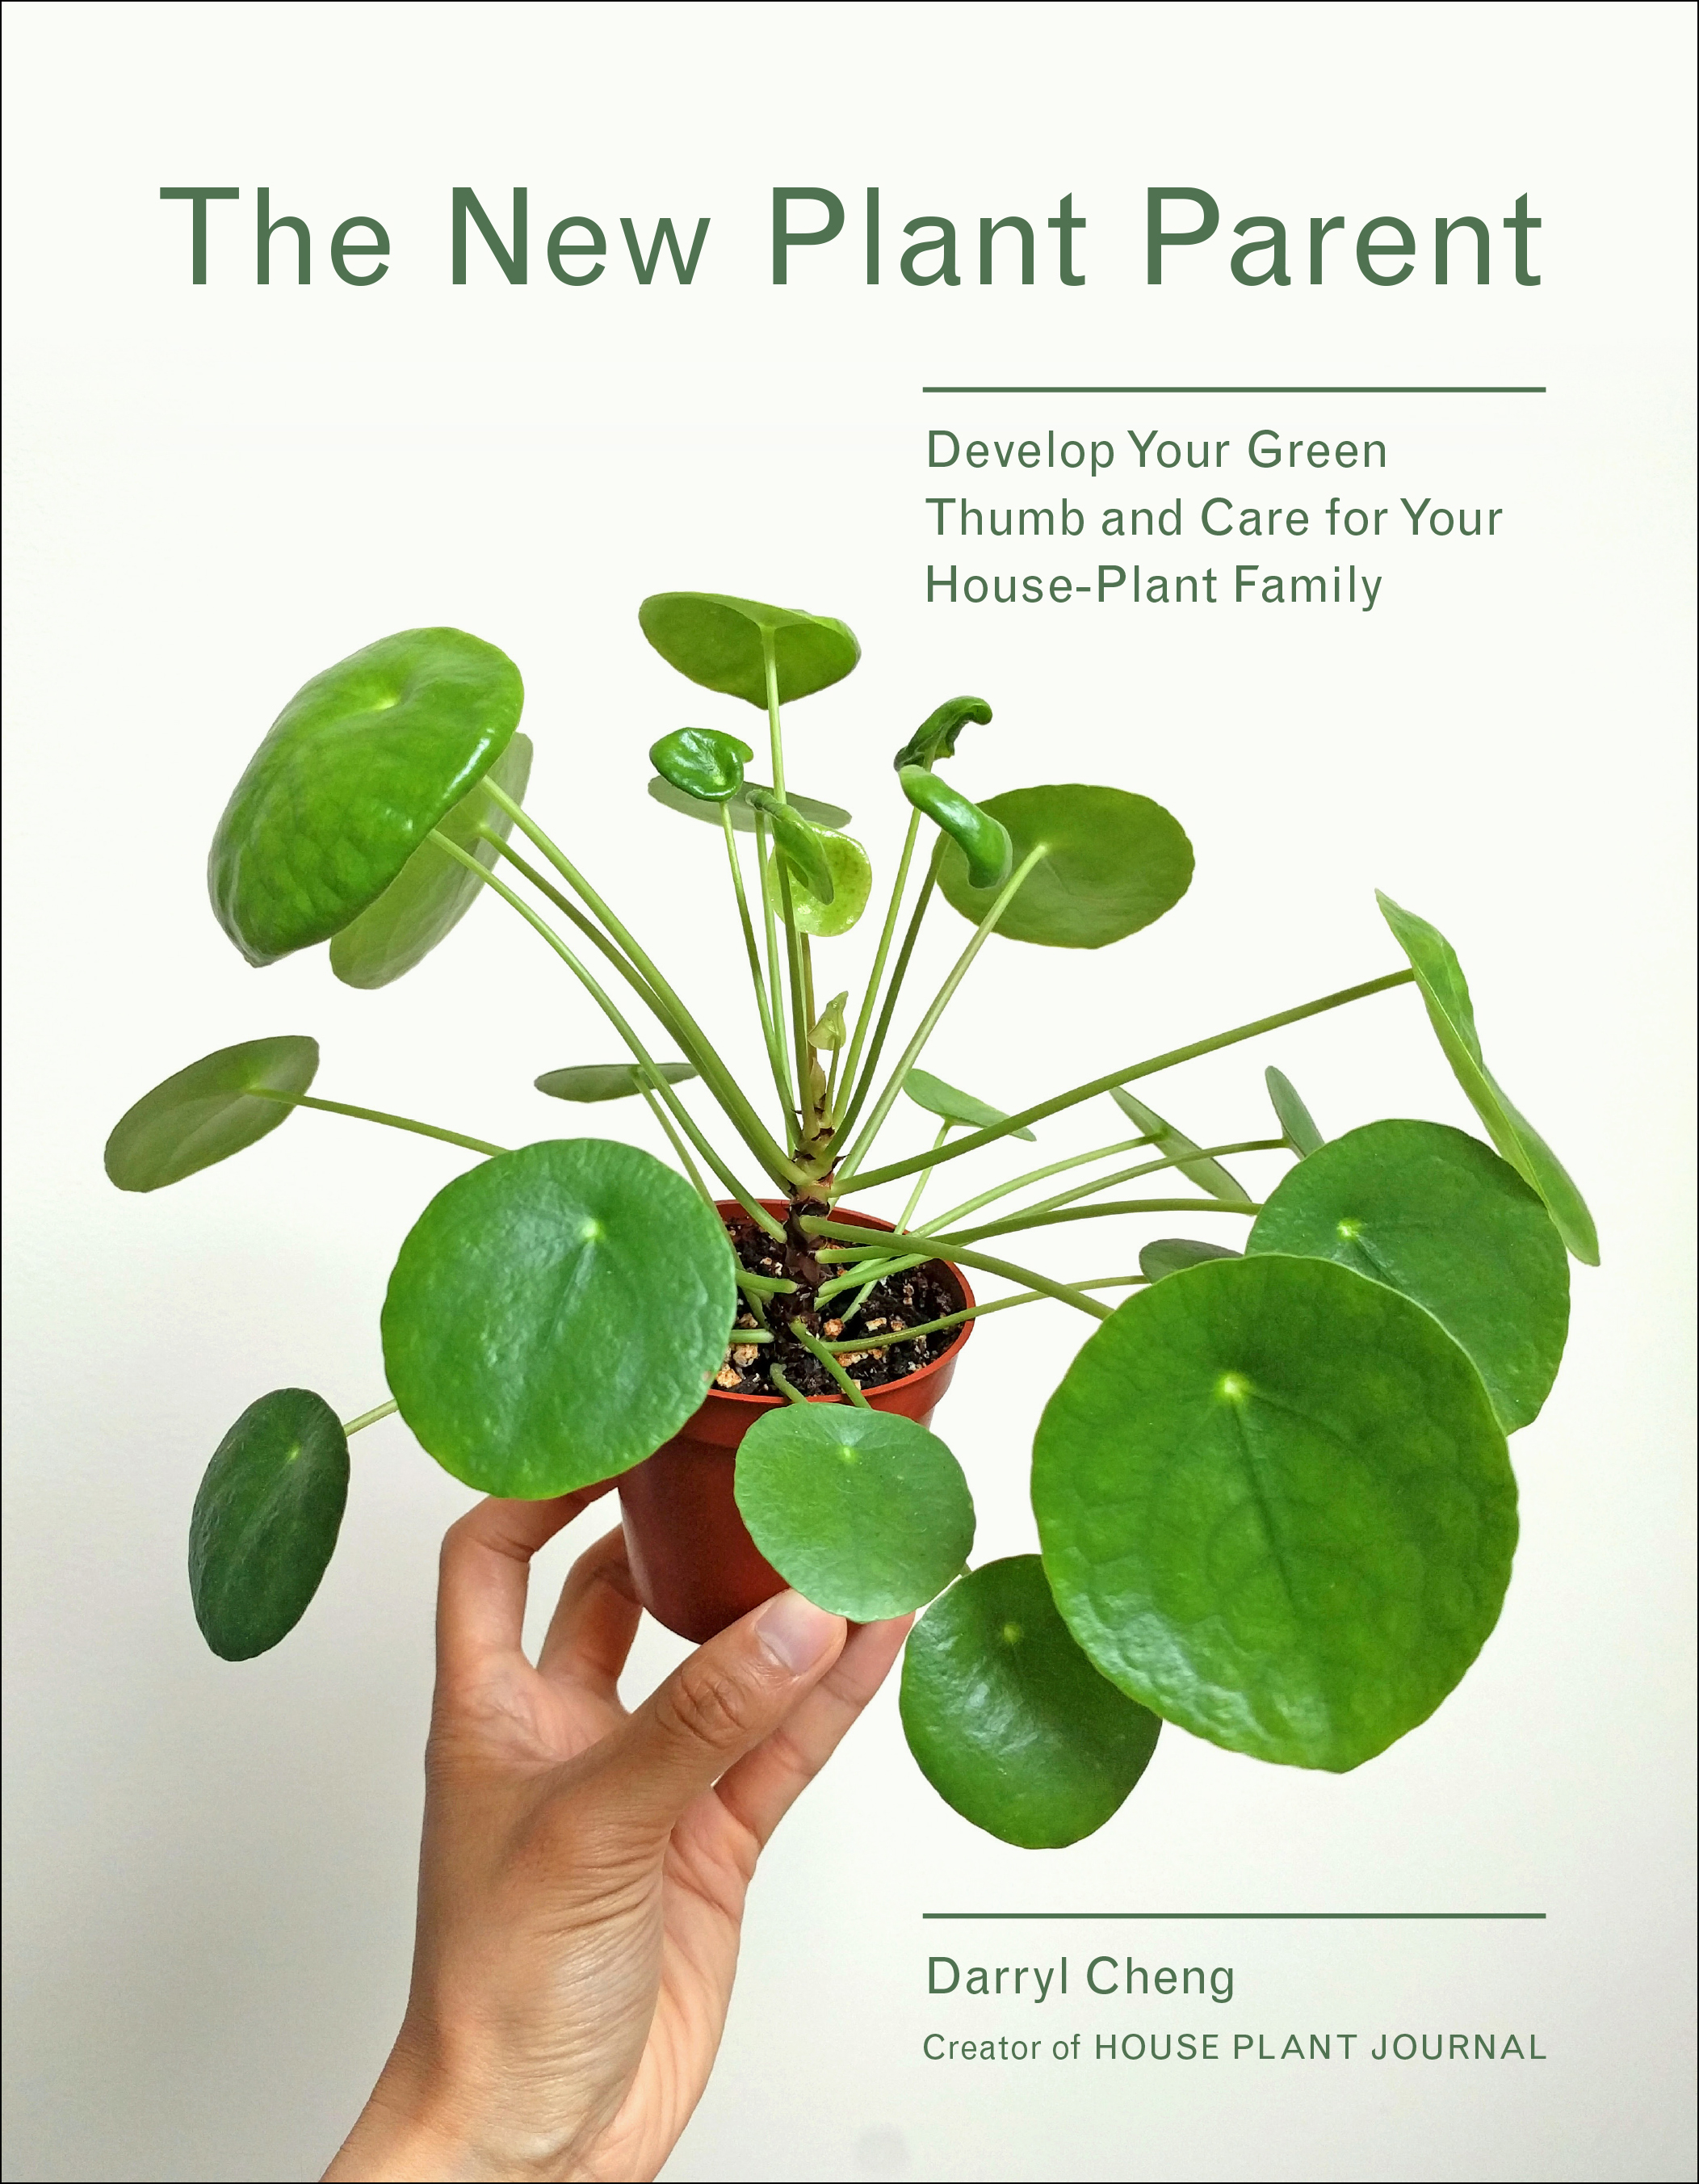 The New Plant Parent - The New Plant Parent covers all of the basics of growing house plants, from finding the right light, to everyday care like watering and fertilizing, to containers, to recommended species. Cheng's friendly tone, personal stories, and accessible photographs fill his book with the same generous spirit that has made @houseplantjournal, his Instagram account, a popular source of advice and inspiration for thousands of indoor gardeners.Read more here!